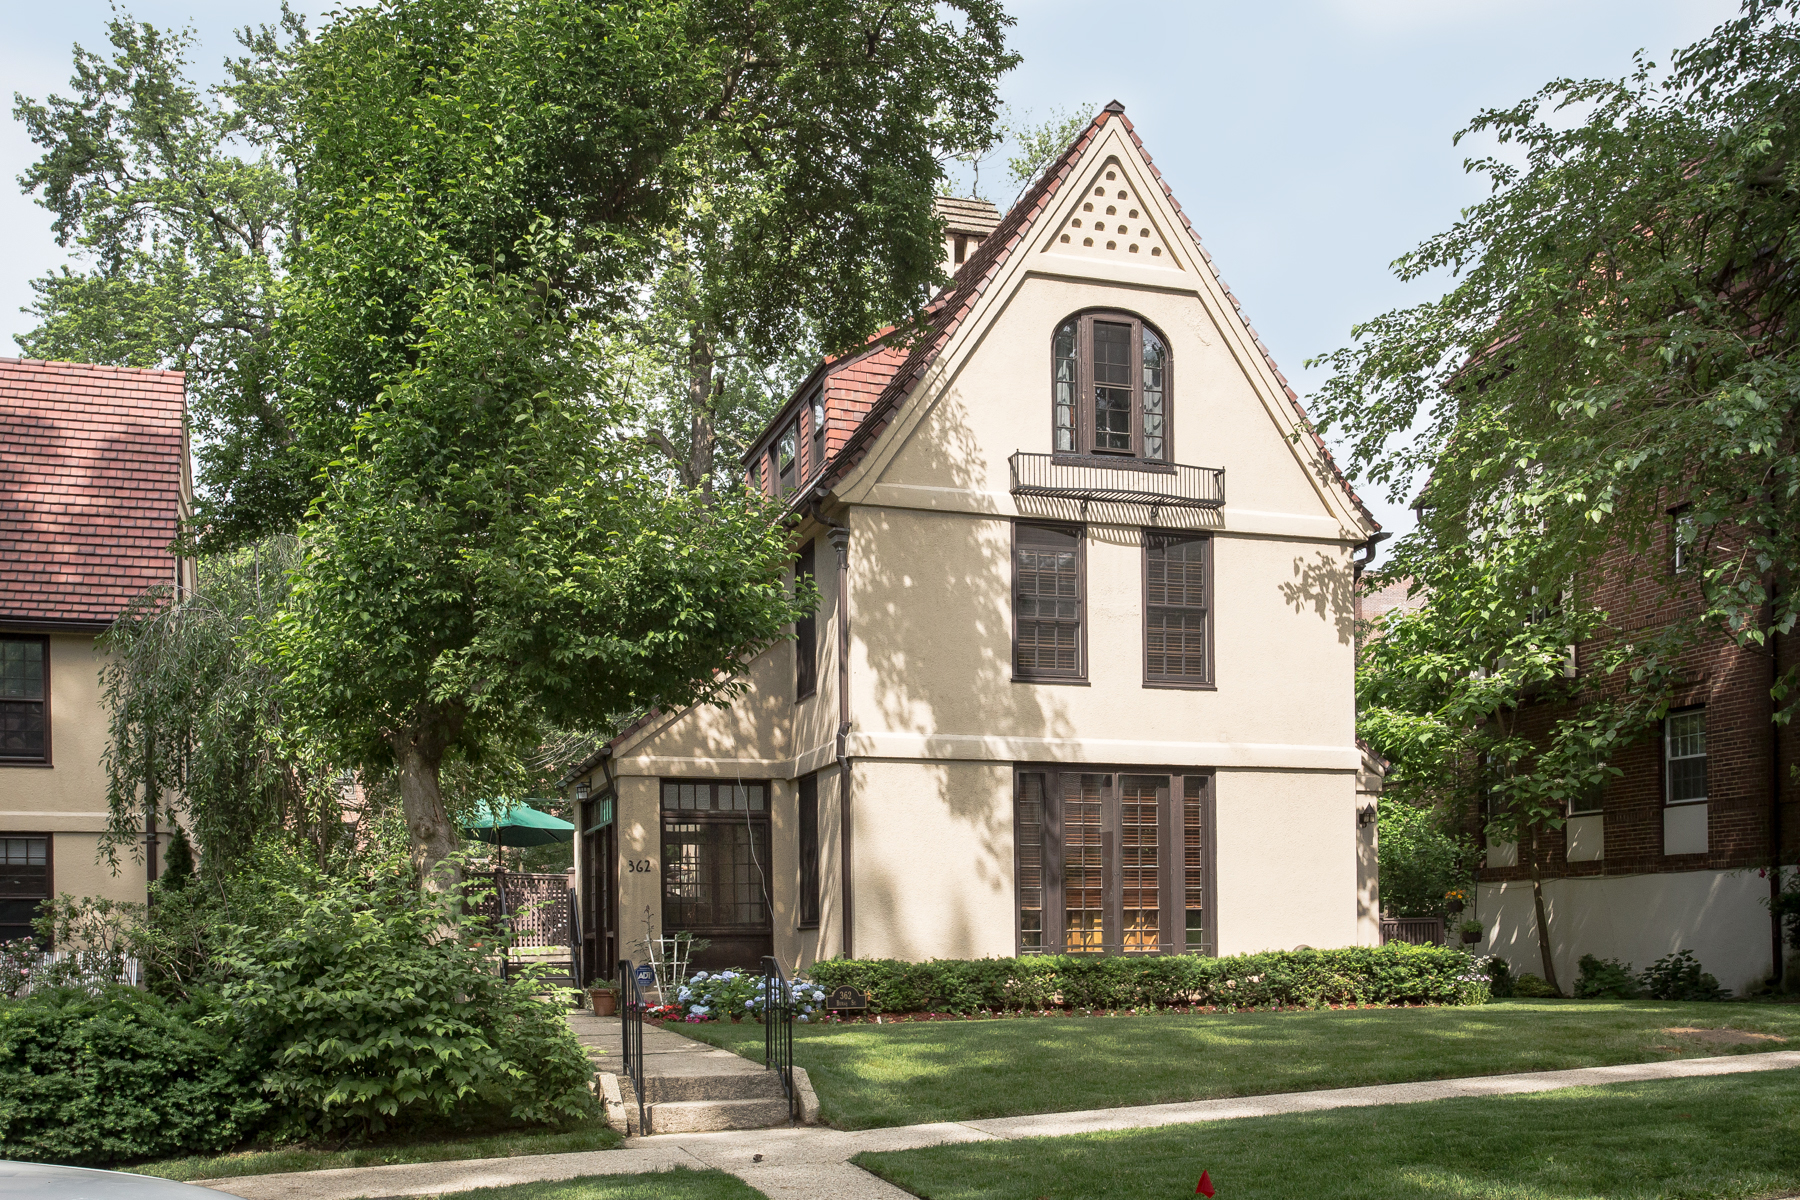 """Single Family Home for Sale at """"COTTAGE LIVING AT IT'S FINEST"""" 362 Burns Street, Forest Hills Gardens, Forest Hills Gardens, Forest Hills, New York 11375 United States"""